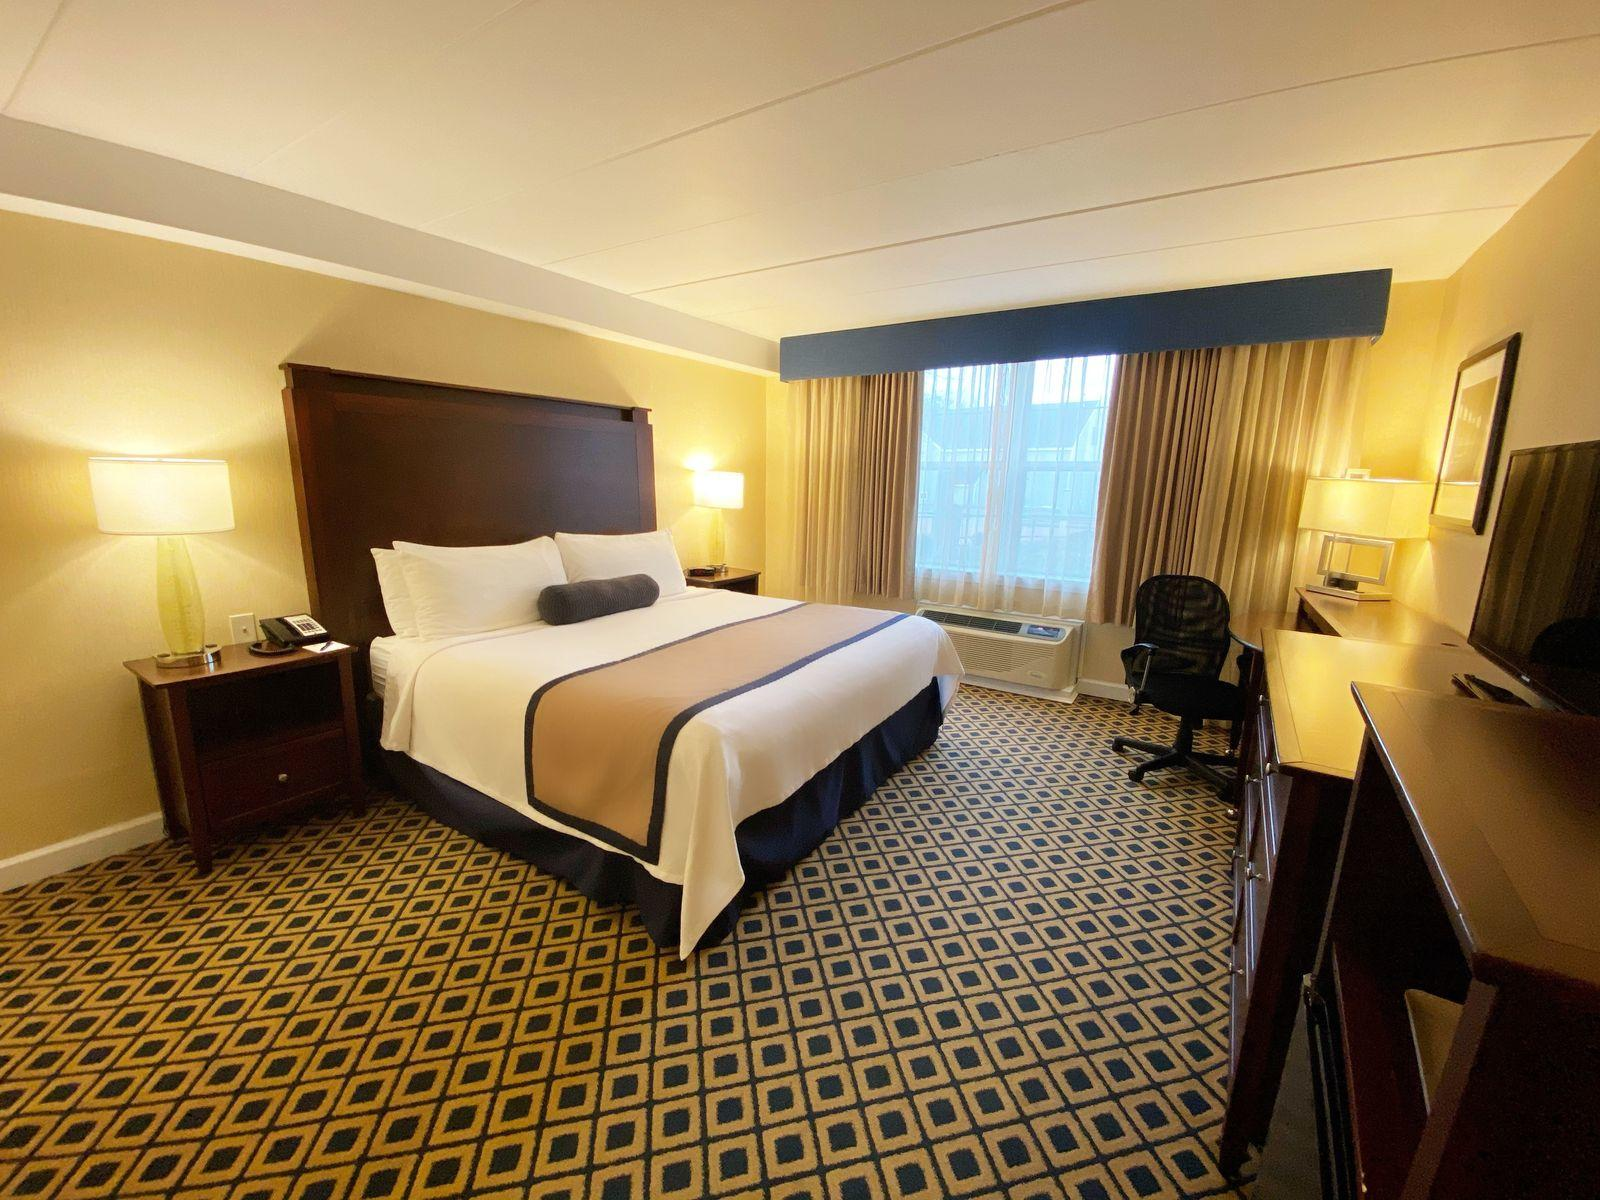 Handicap Accessible Room with one bed at Westford Regency